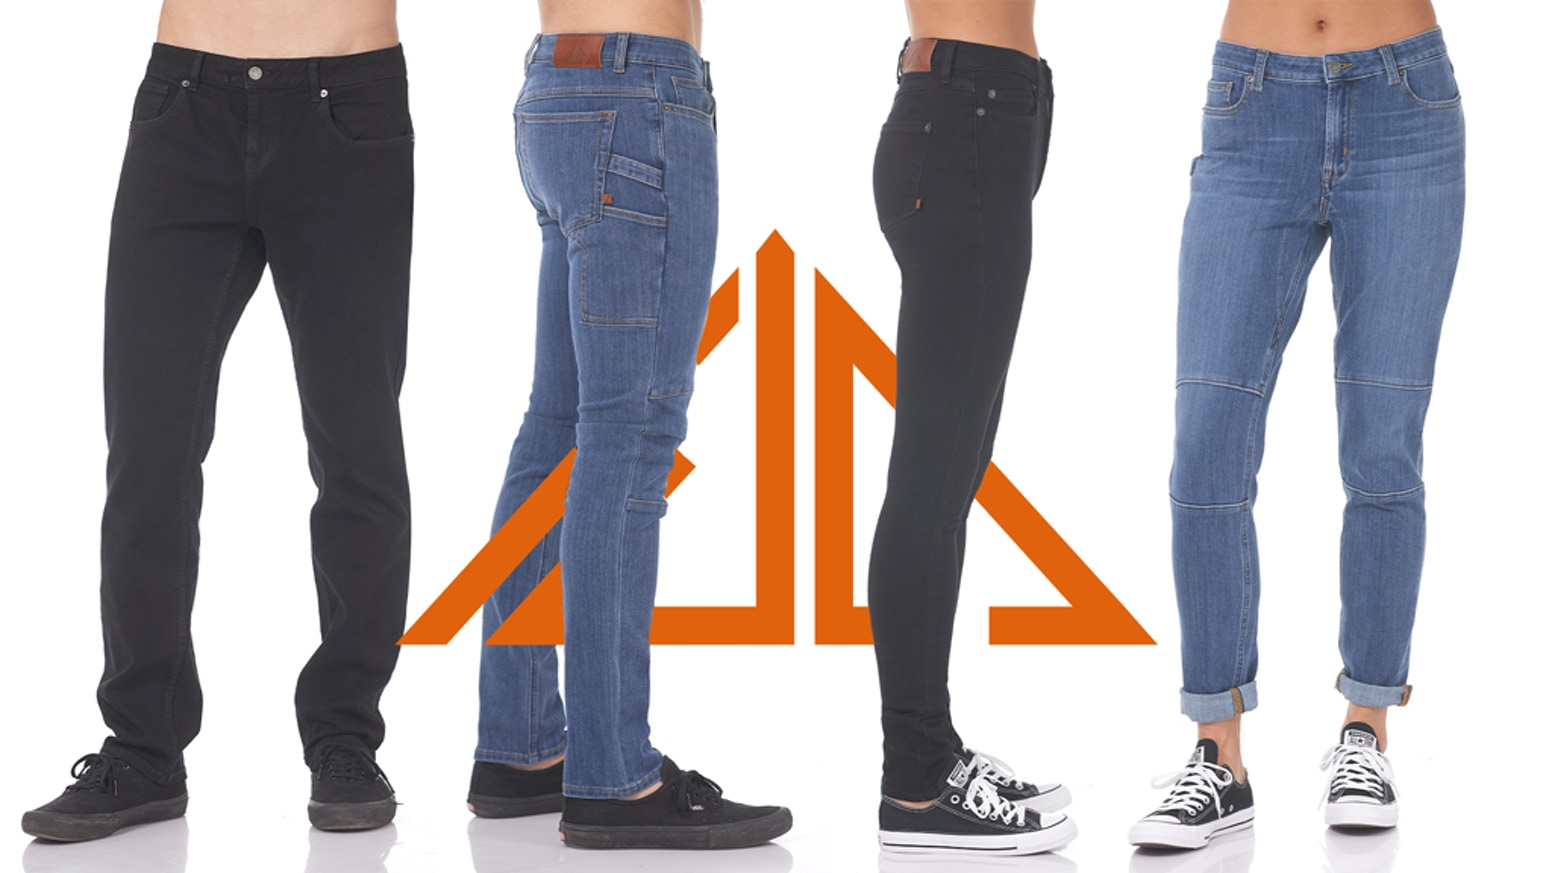 Performance denim unlike anything you've worn before. Stretch, durability, breathability, and sustainability meet for the first time.